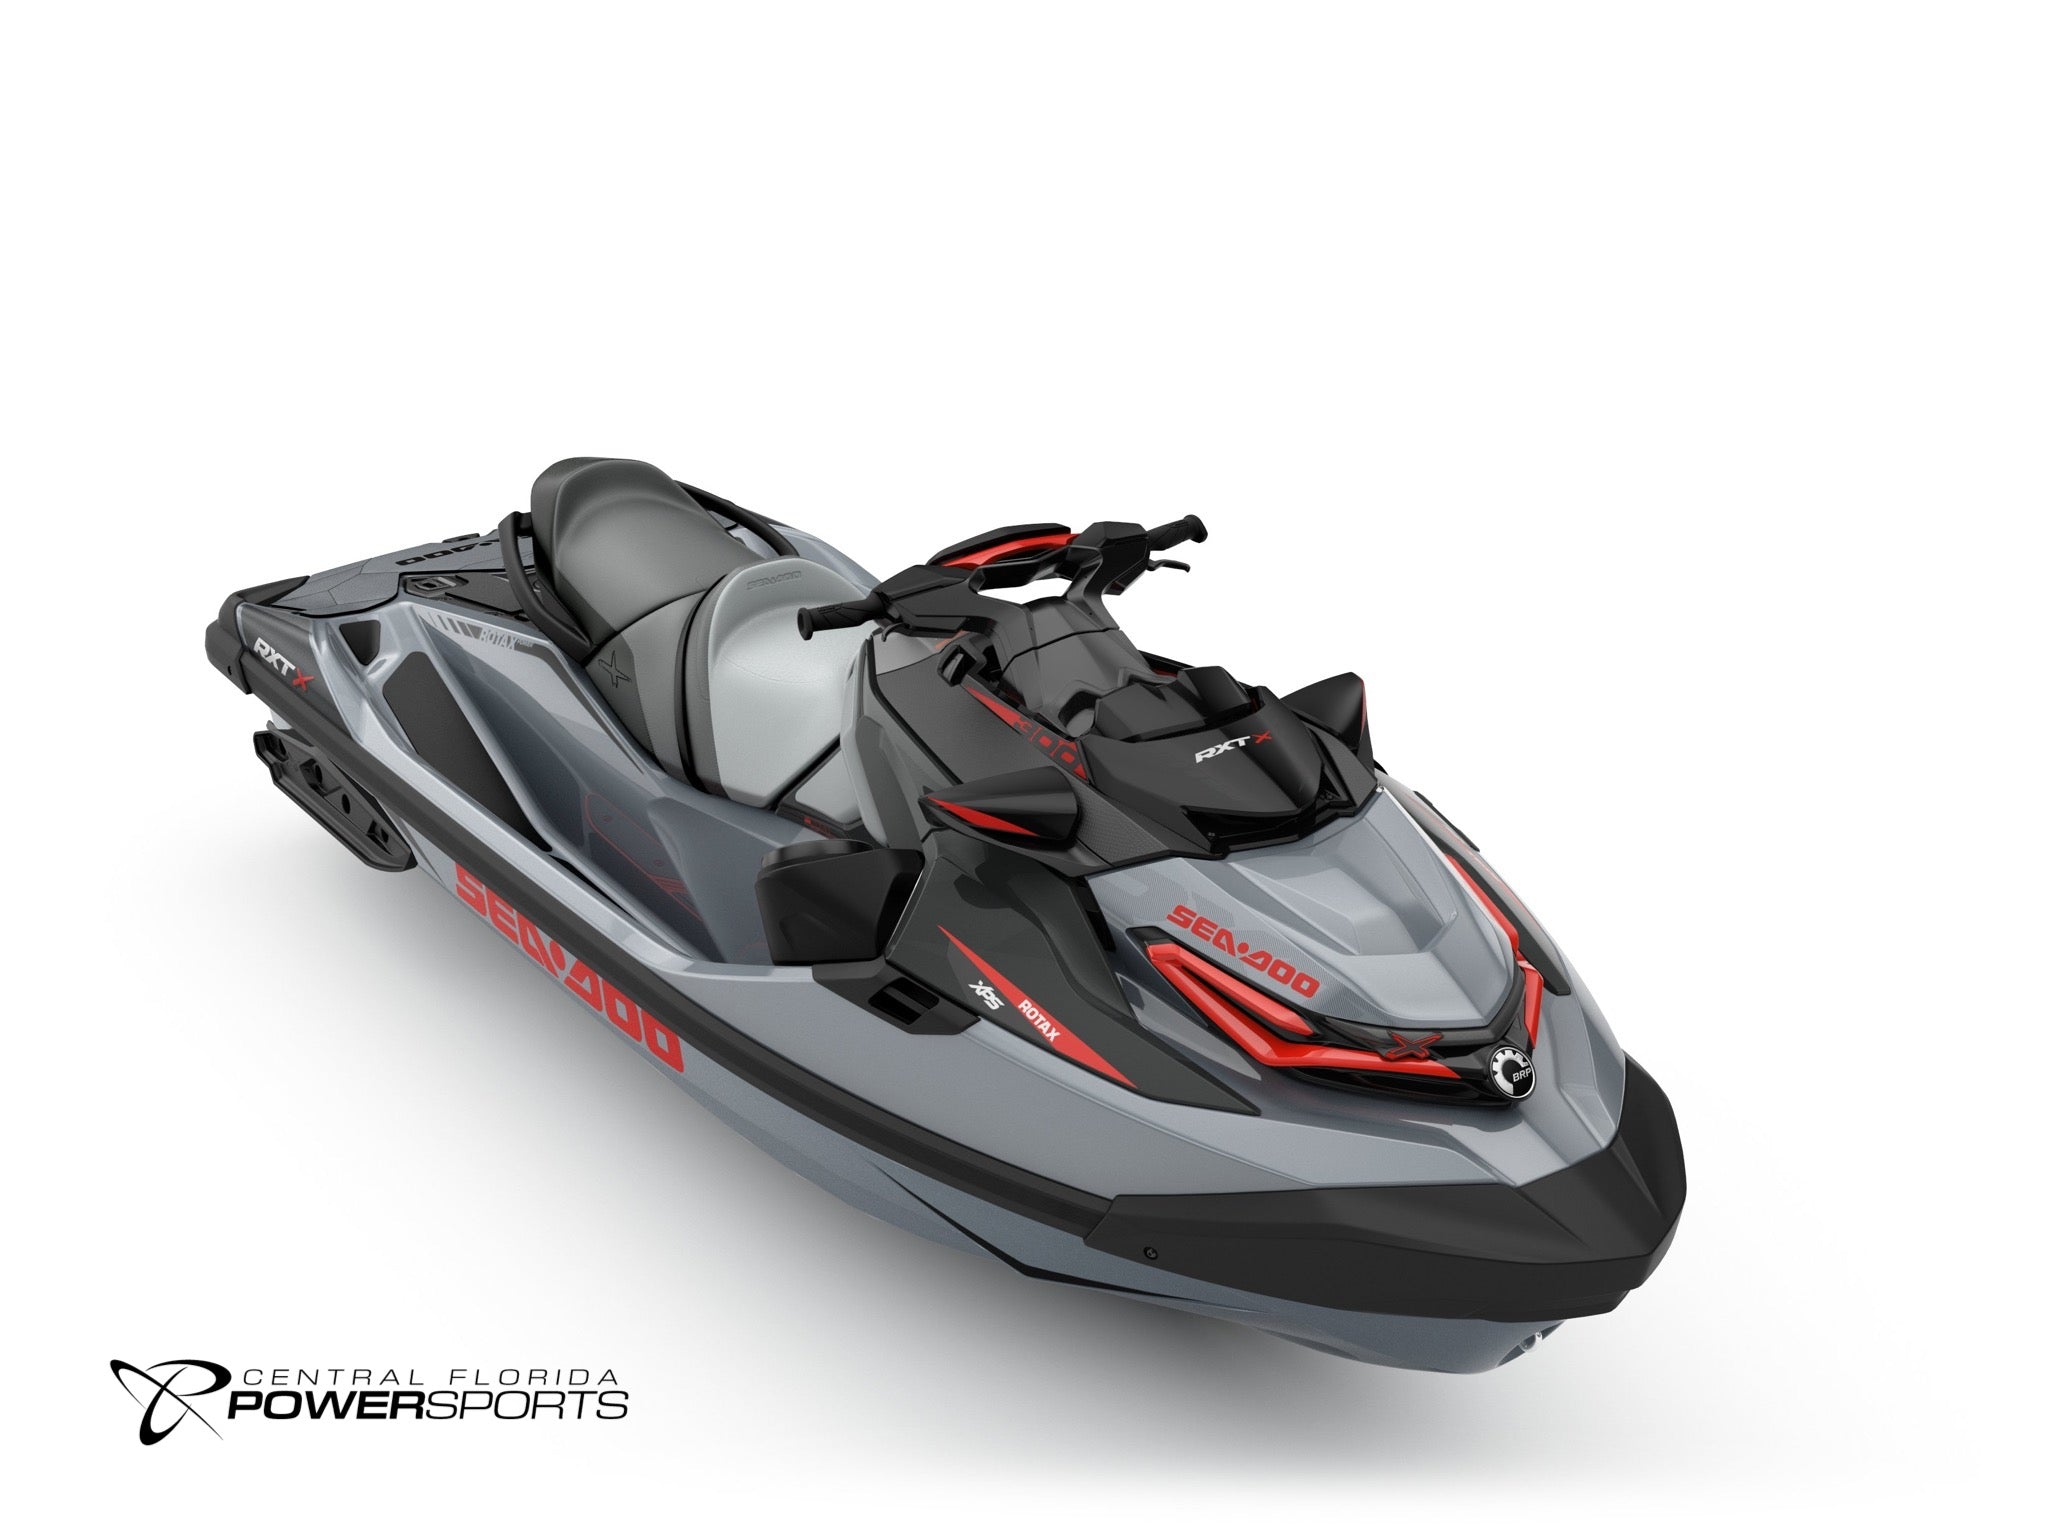 Seadoo Prices >> Lowest Prices On 2018 Sea Doo Rxt X 300 Racing Pwc For Sale